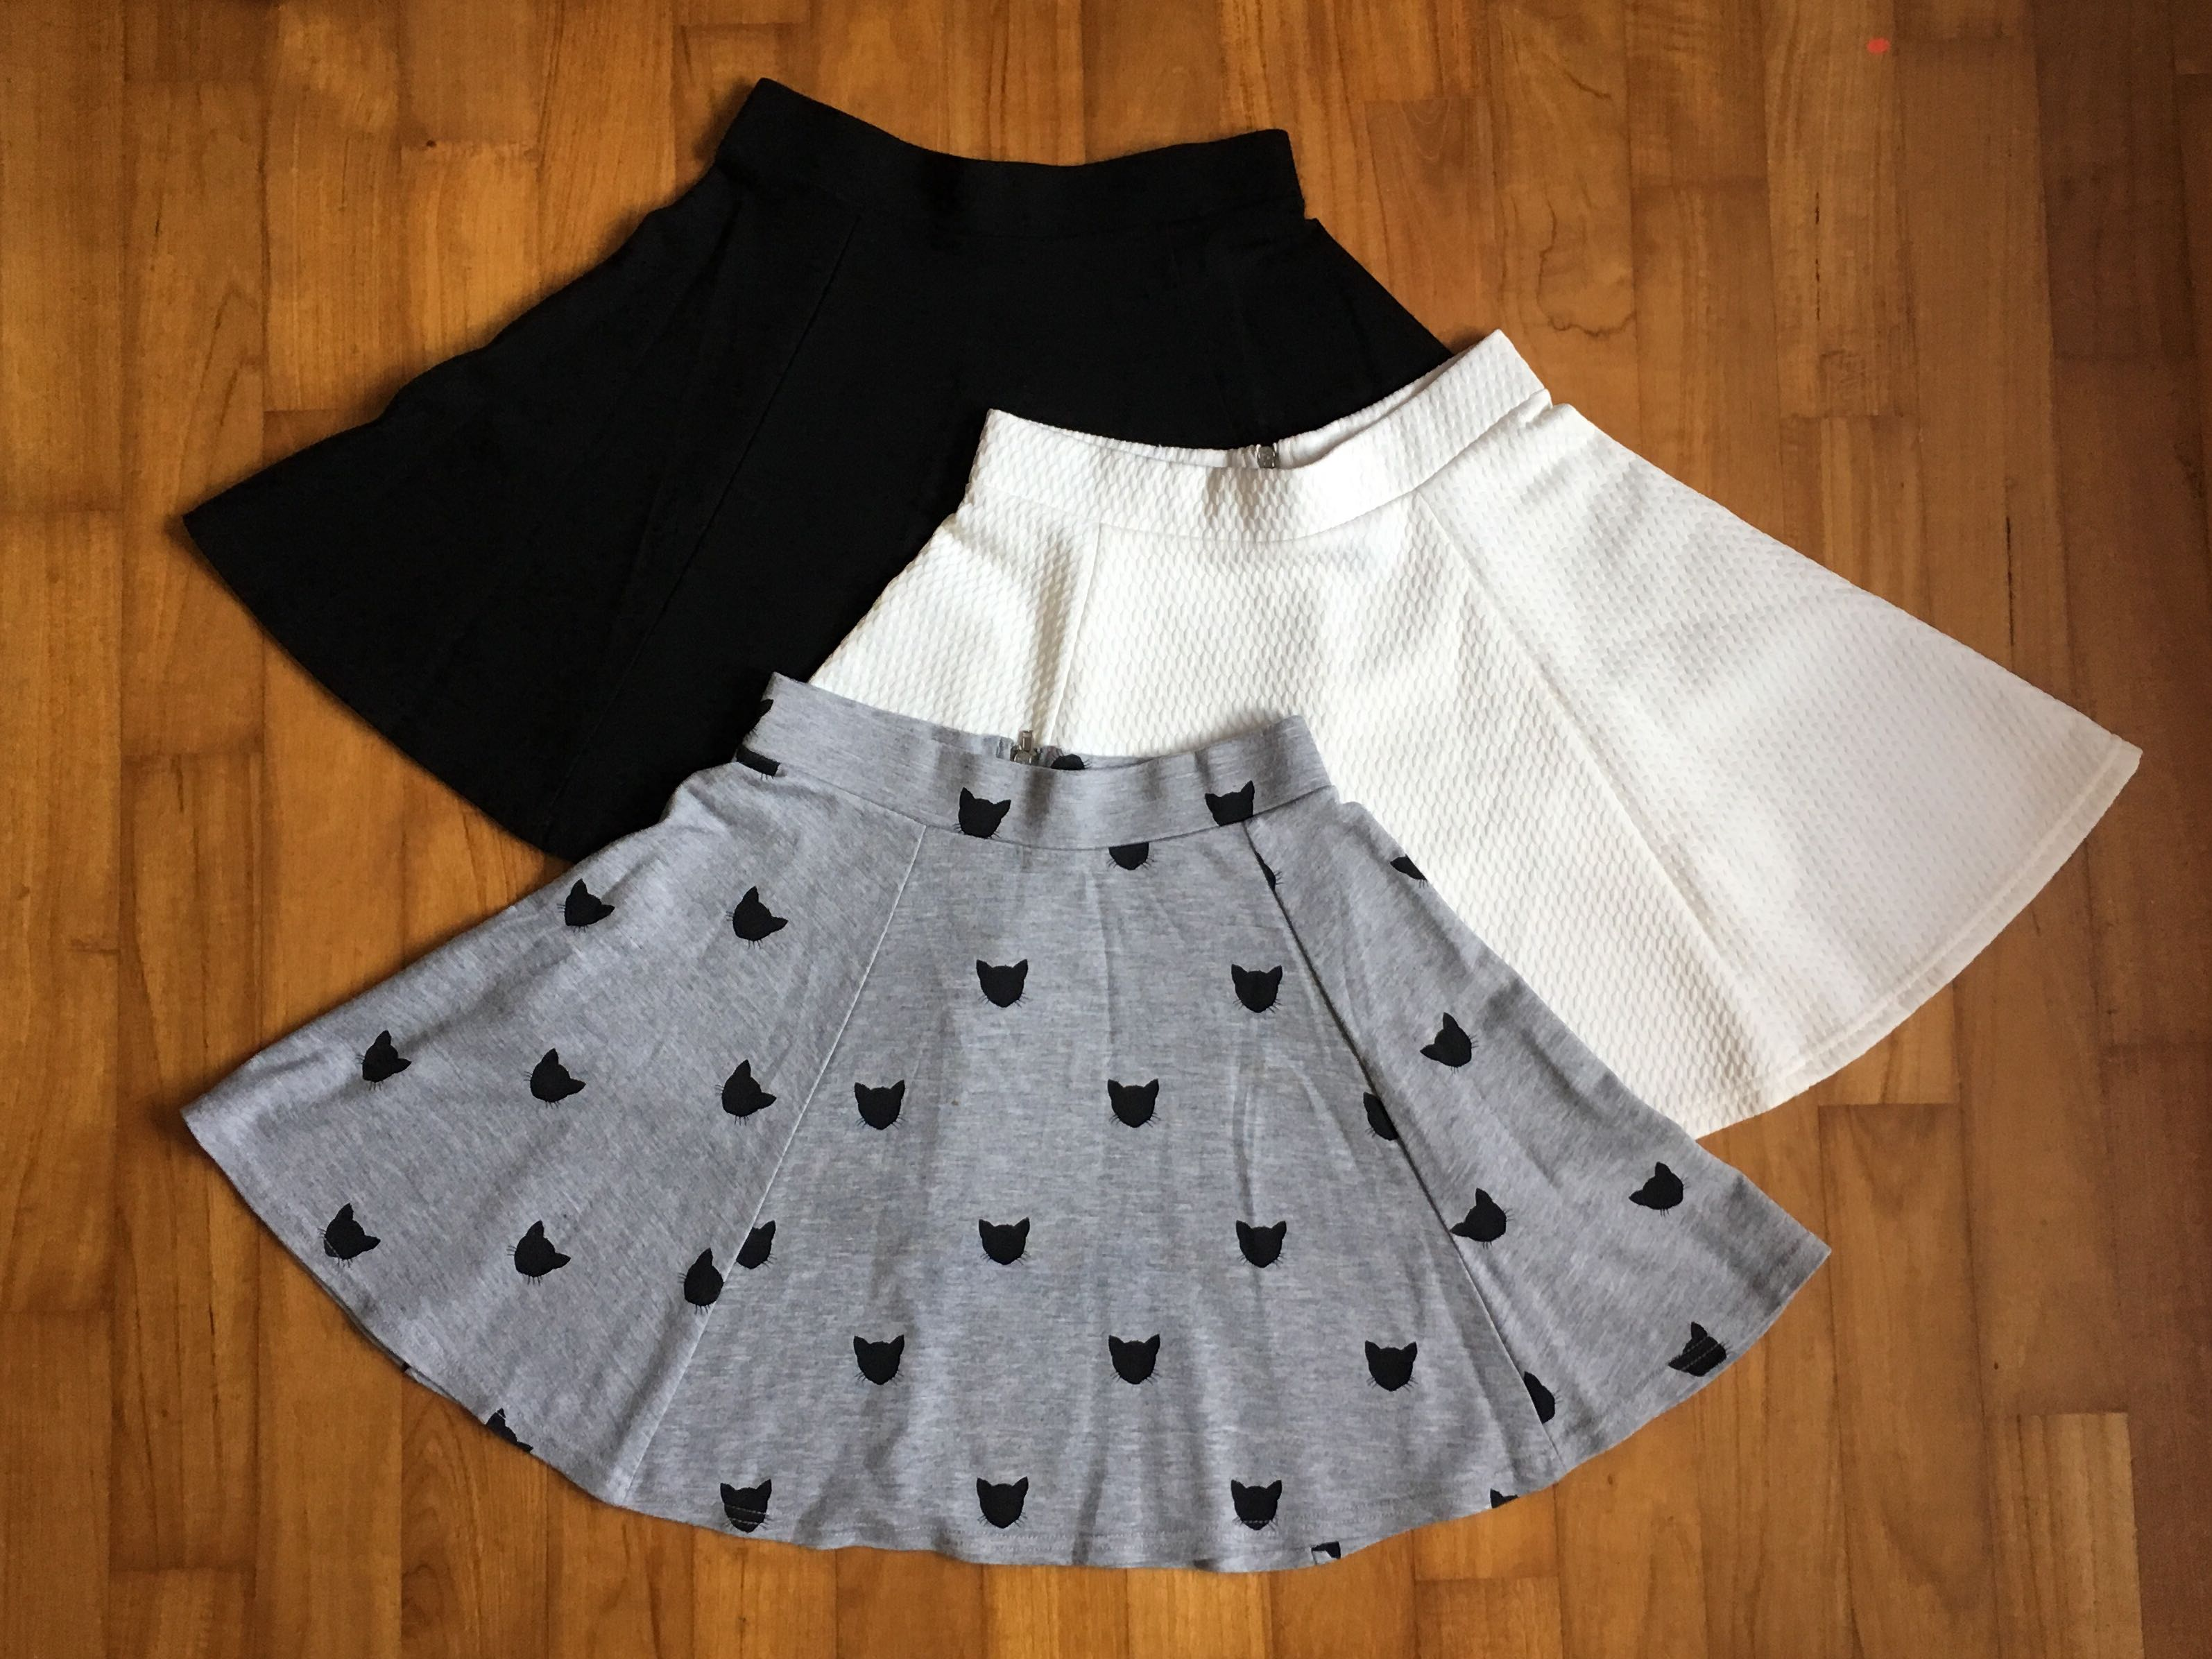 135a893c7f H&M skater skirts: 3 for $15 (cat-print, white, black), Women's Fashion,  Clothes, Dresses & Skirts on Carousell